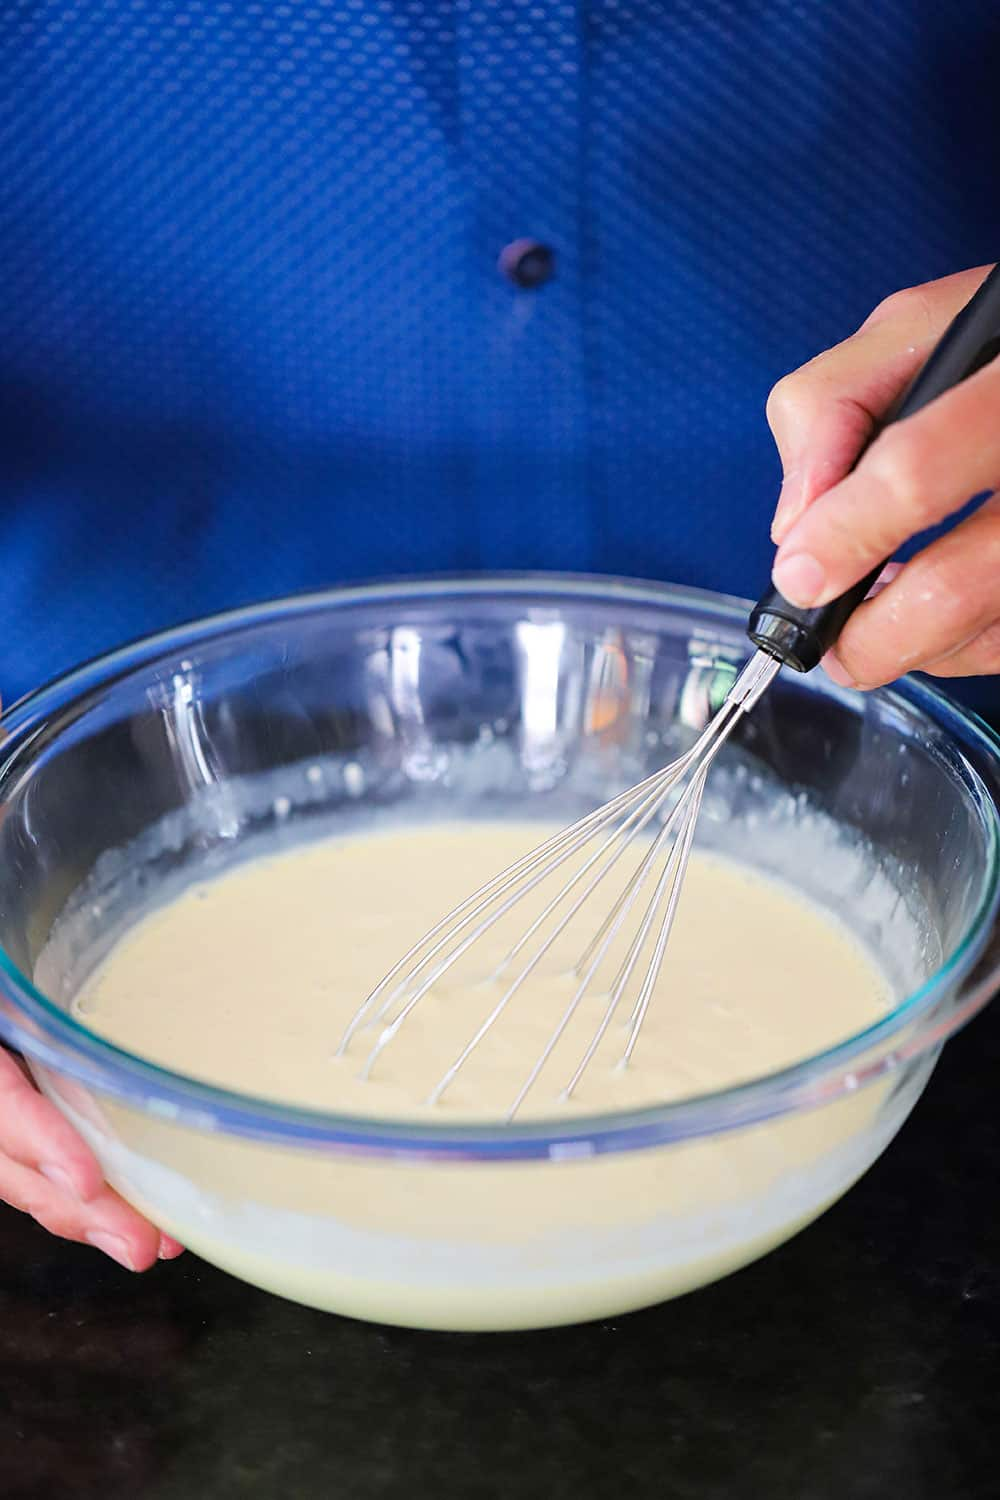 A hand holding a whisk in a glass bowl filled with key lime pie batter.